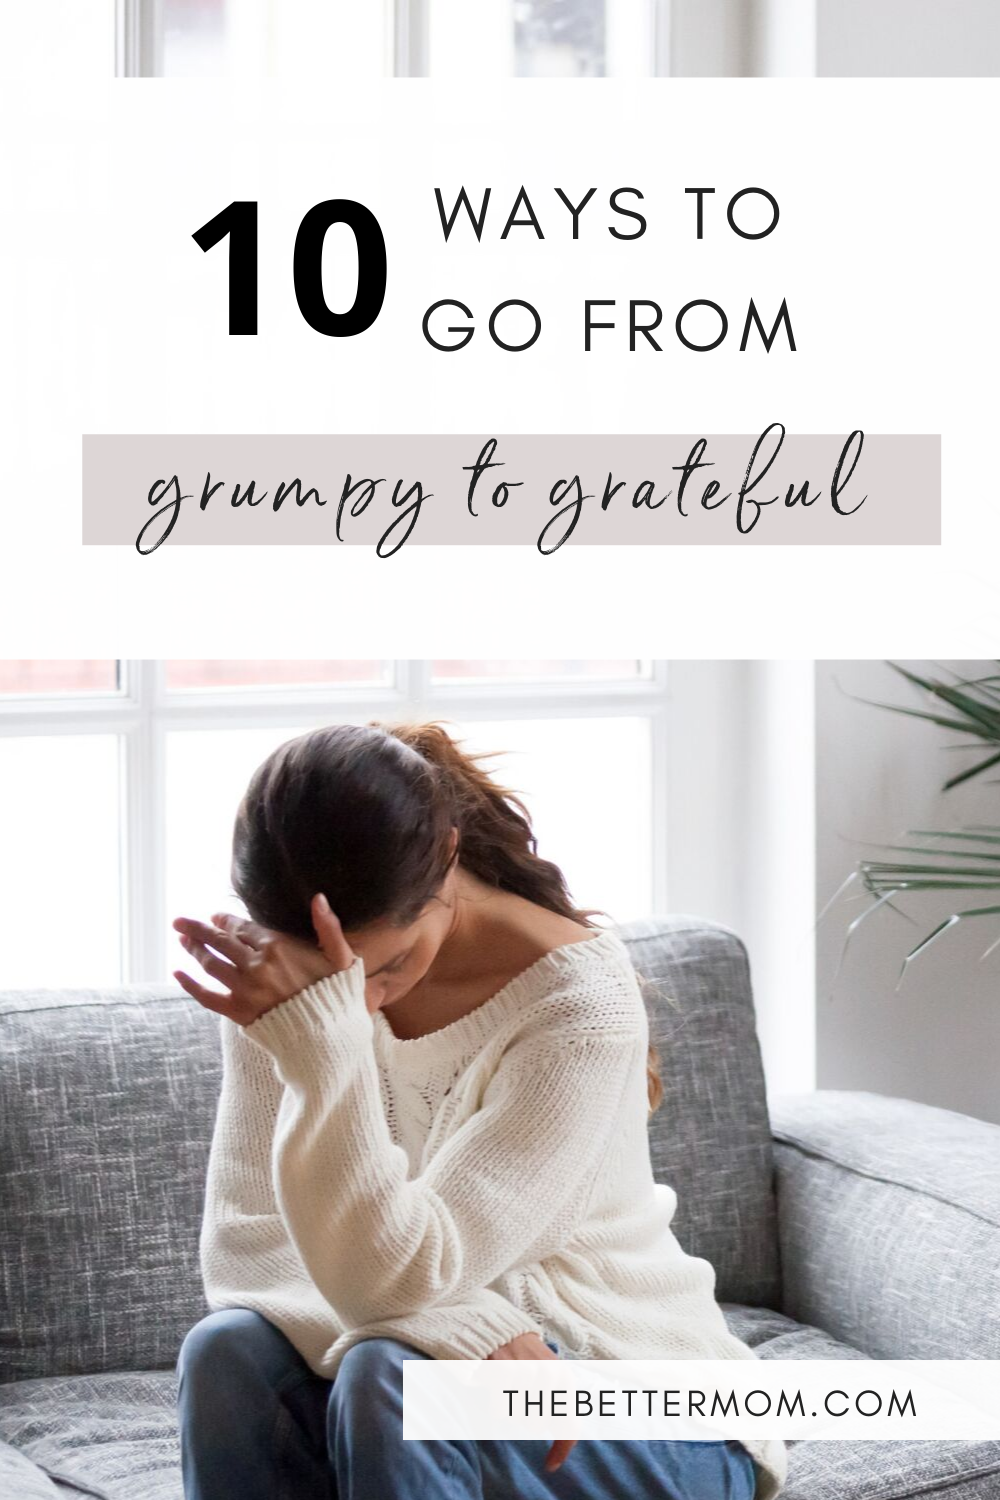 Do your kids see your bad moods? They might be observing more than you even realize! Say goodbye to grouchy with these ideas to bring calm to your heart and your home.